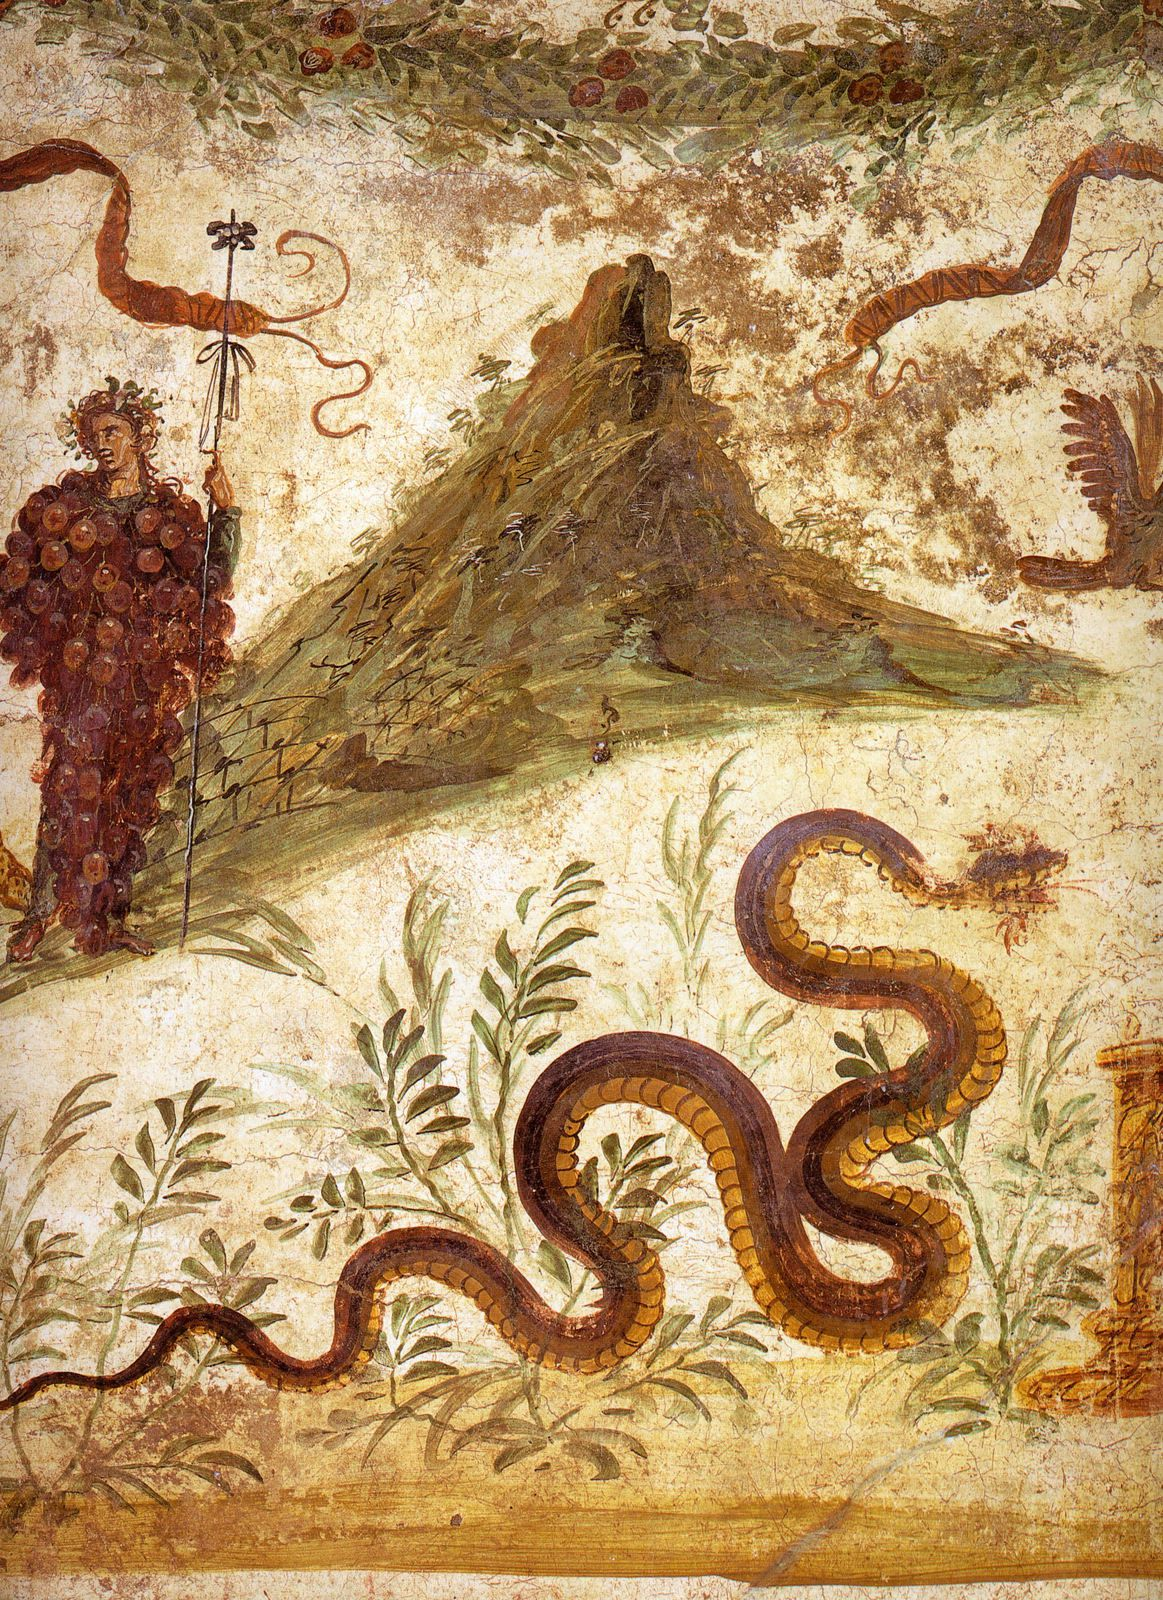 The Romans cultivated the vine on the slopes of Vesuvius - Pompeii - Casa del Centenario